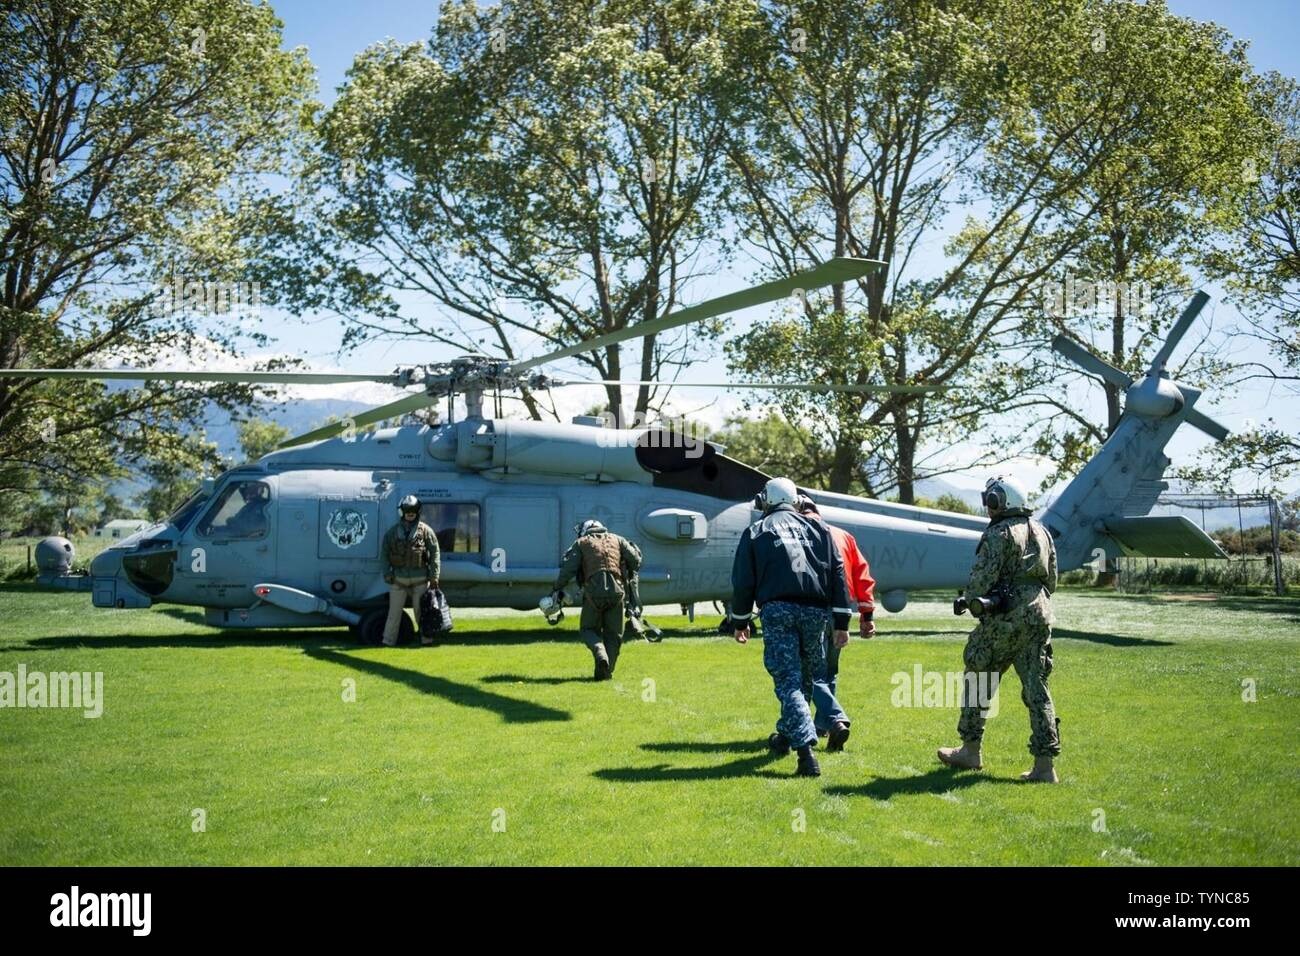 KAIKOURA, New Zealand (Nov. 18, 2016) Winston Gray, the mayor of Kaikoura, accompanied by Cmdr. Timothy LaBenz, commanding officer of USS Sampson (DDG 102), prepares to embark an MH-60R Sea Hawk, attached to Helicopter Maritime Strike Squadron (HSM) 73, to conduct an aerial survey of damage in the area. HSM-73 is operating from Sampson, which at the request of the government of New Zealand, remains off the coast of New Zealand's South Island to offer assistance to those affected by the recent earthquake. (New Zealand Defence Force - Stock Image